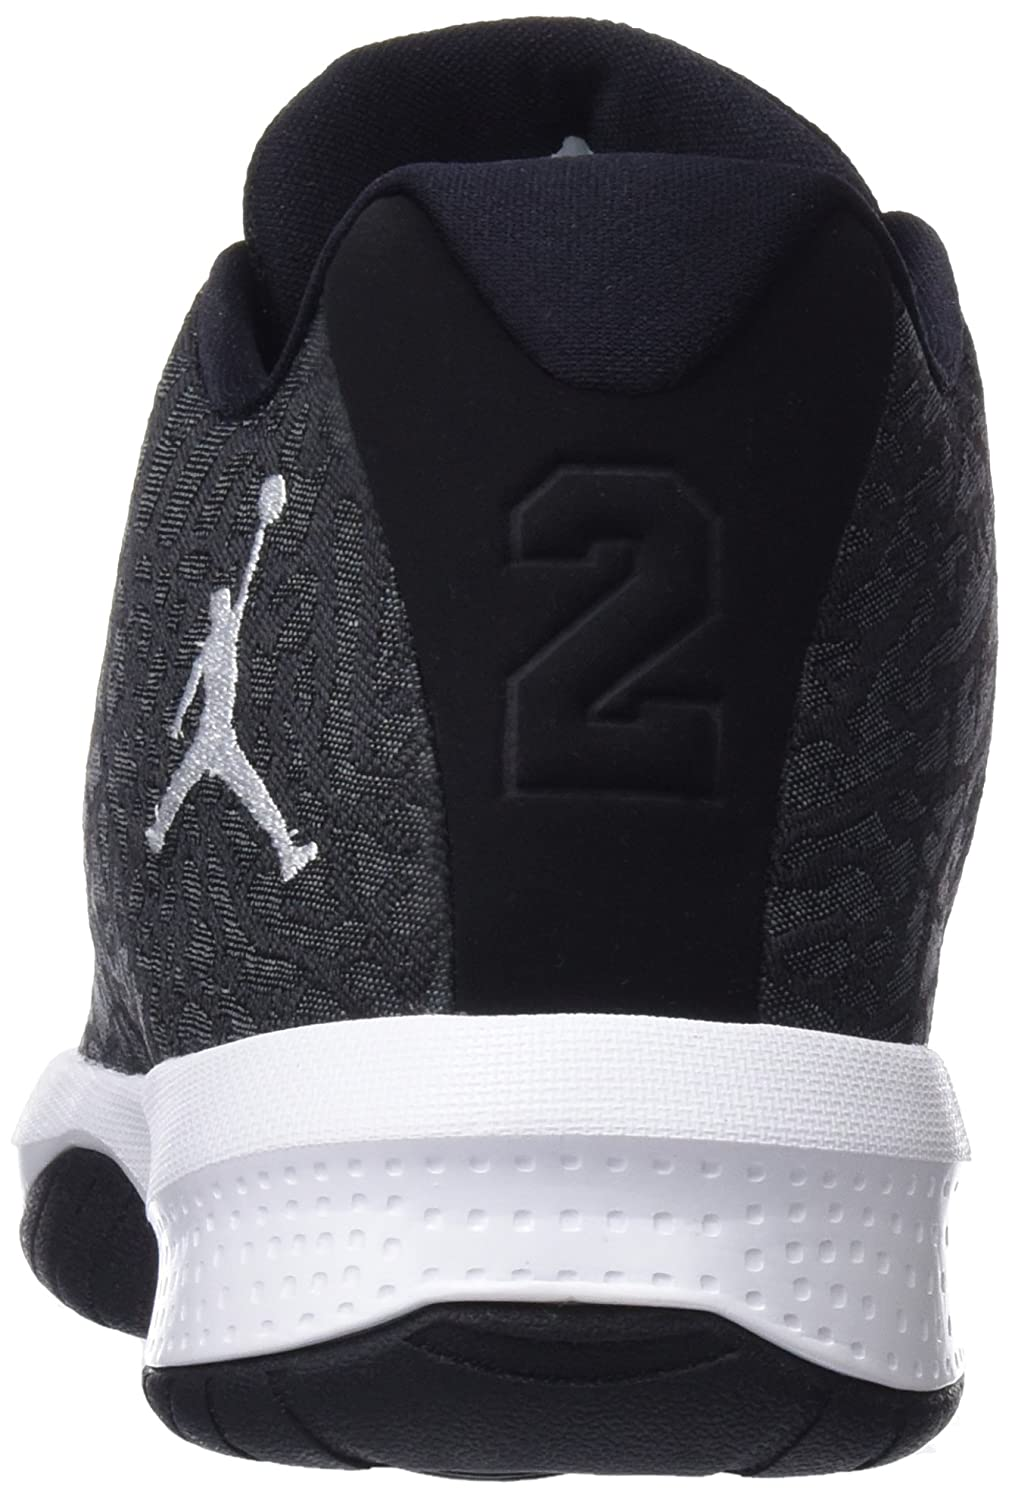 Nouvelles Chaussures Nike Jordan B Fly Gs Nike Jordan B Fly Gs Chaussures De Basketball Xhptsuty-131240-6592722 Can Be Repeatedly Remolded.